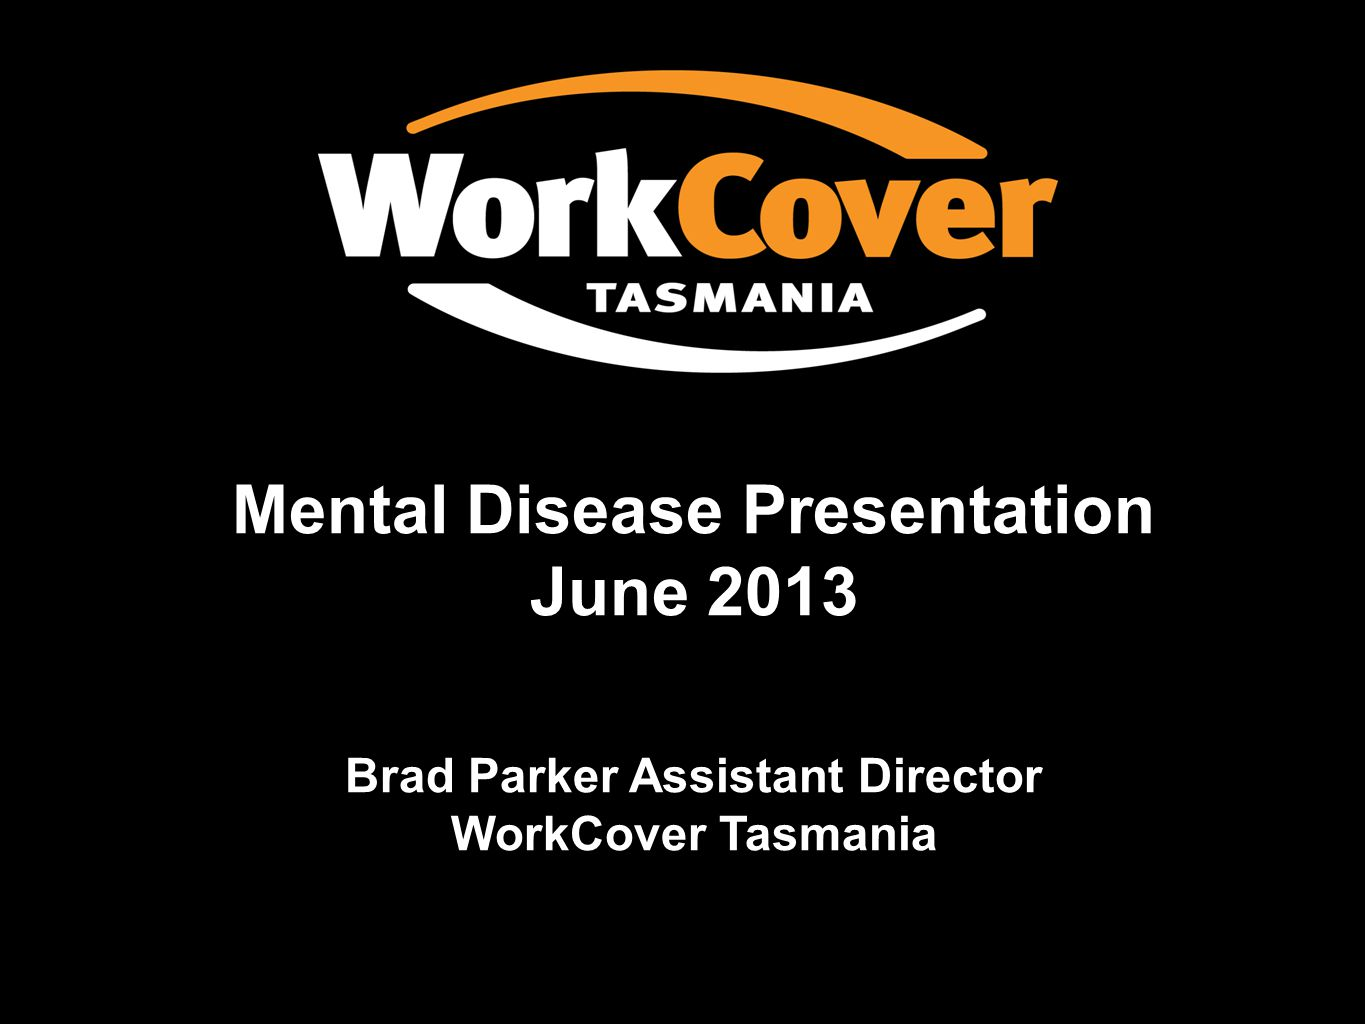 Mental Disease Presentation June 2013 Brad Parker Assistant Director WorkCover Tasmania